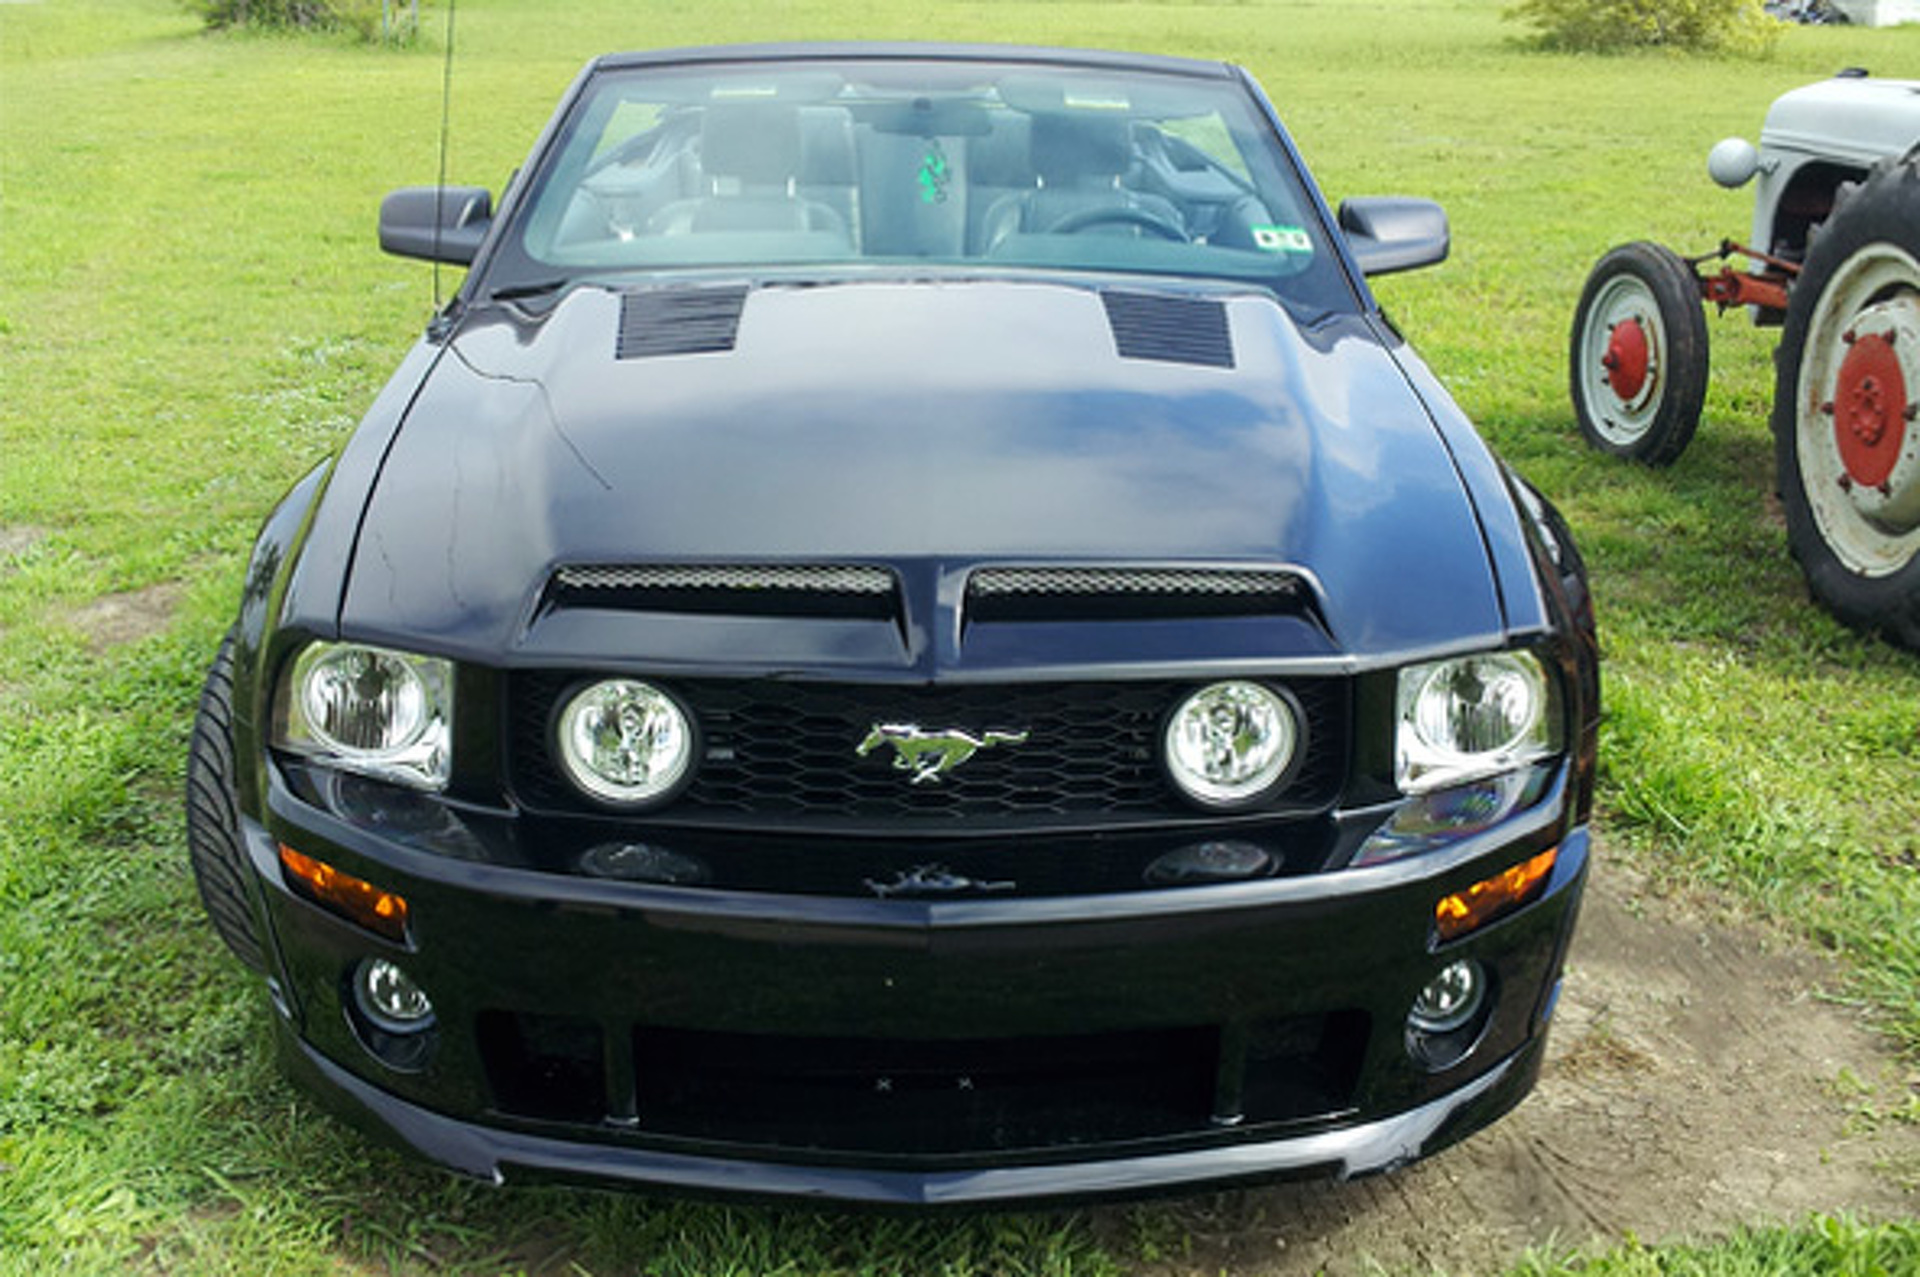 Your Ride: 2005 Ford Mustang GT Convertible